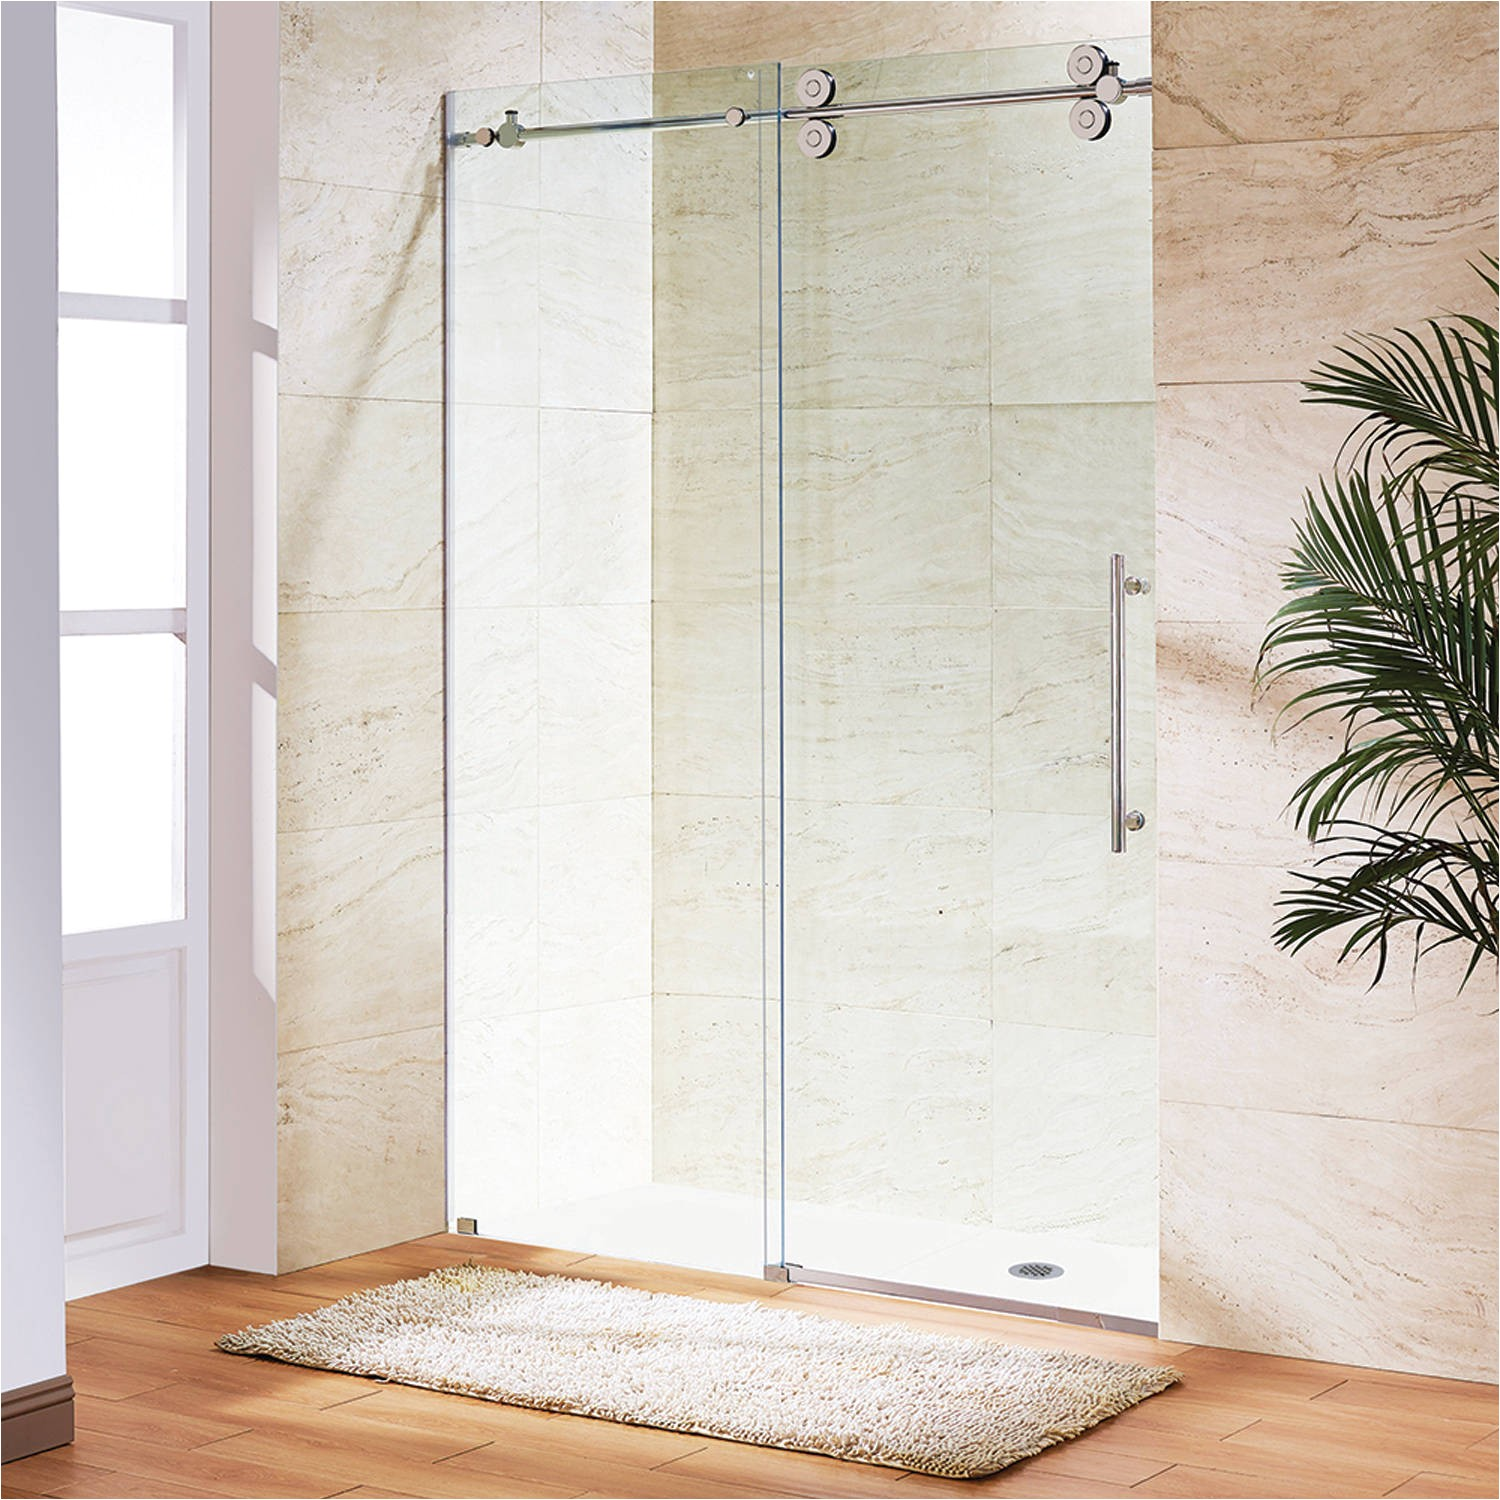 vigo elan 56 frameless shower door 3 8 clear glass chrome hardware walmart com